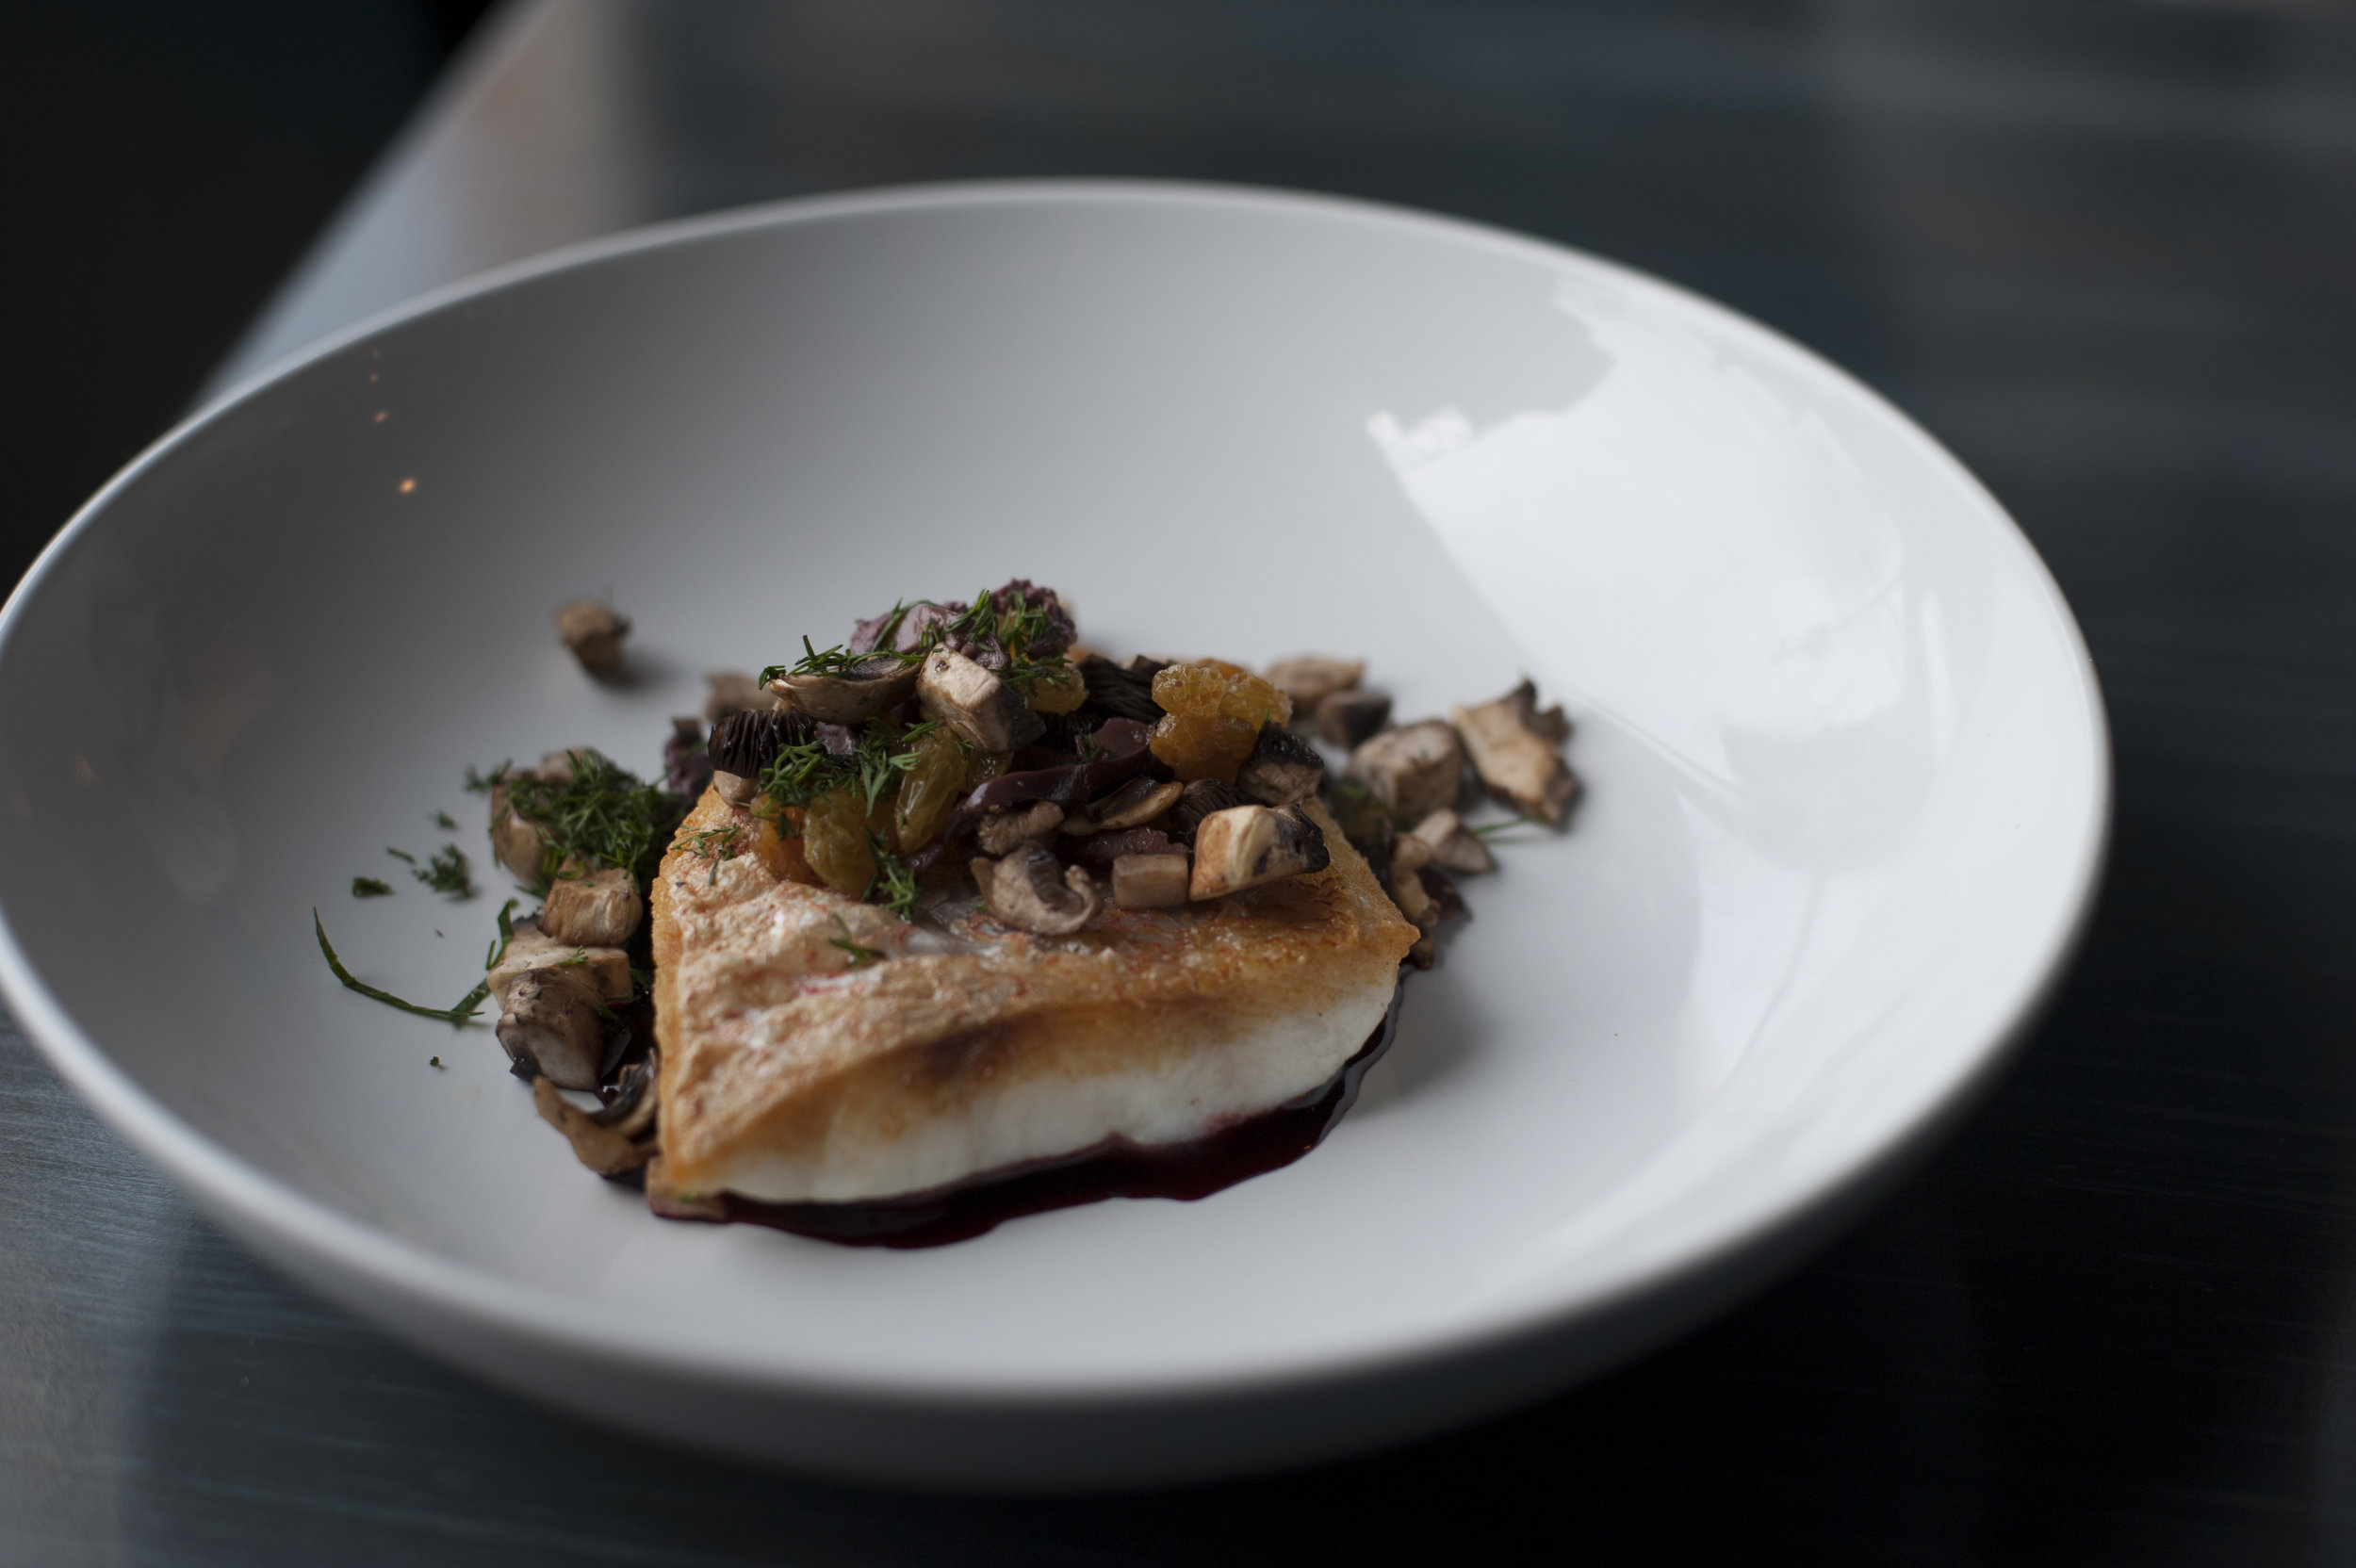 The Mediterranean Red Snapper brings together fillet of red snapper served with red beet beurre blanc sauce, topped with olives, golden raisins and mushrooms for a rich and complex dish.